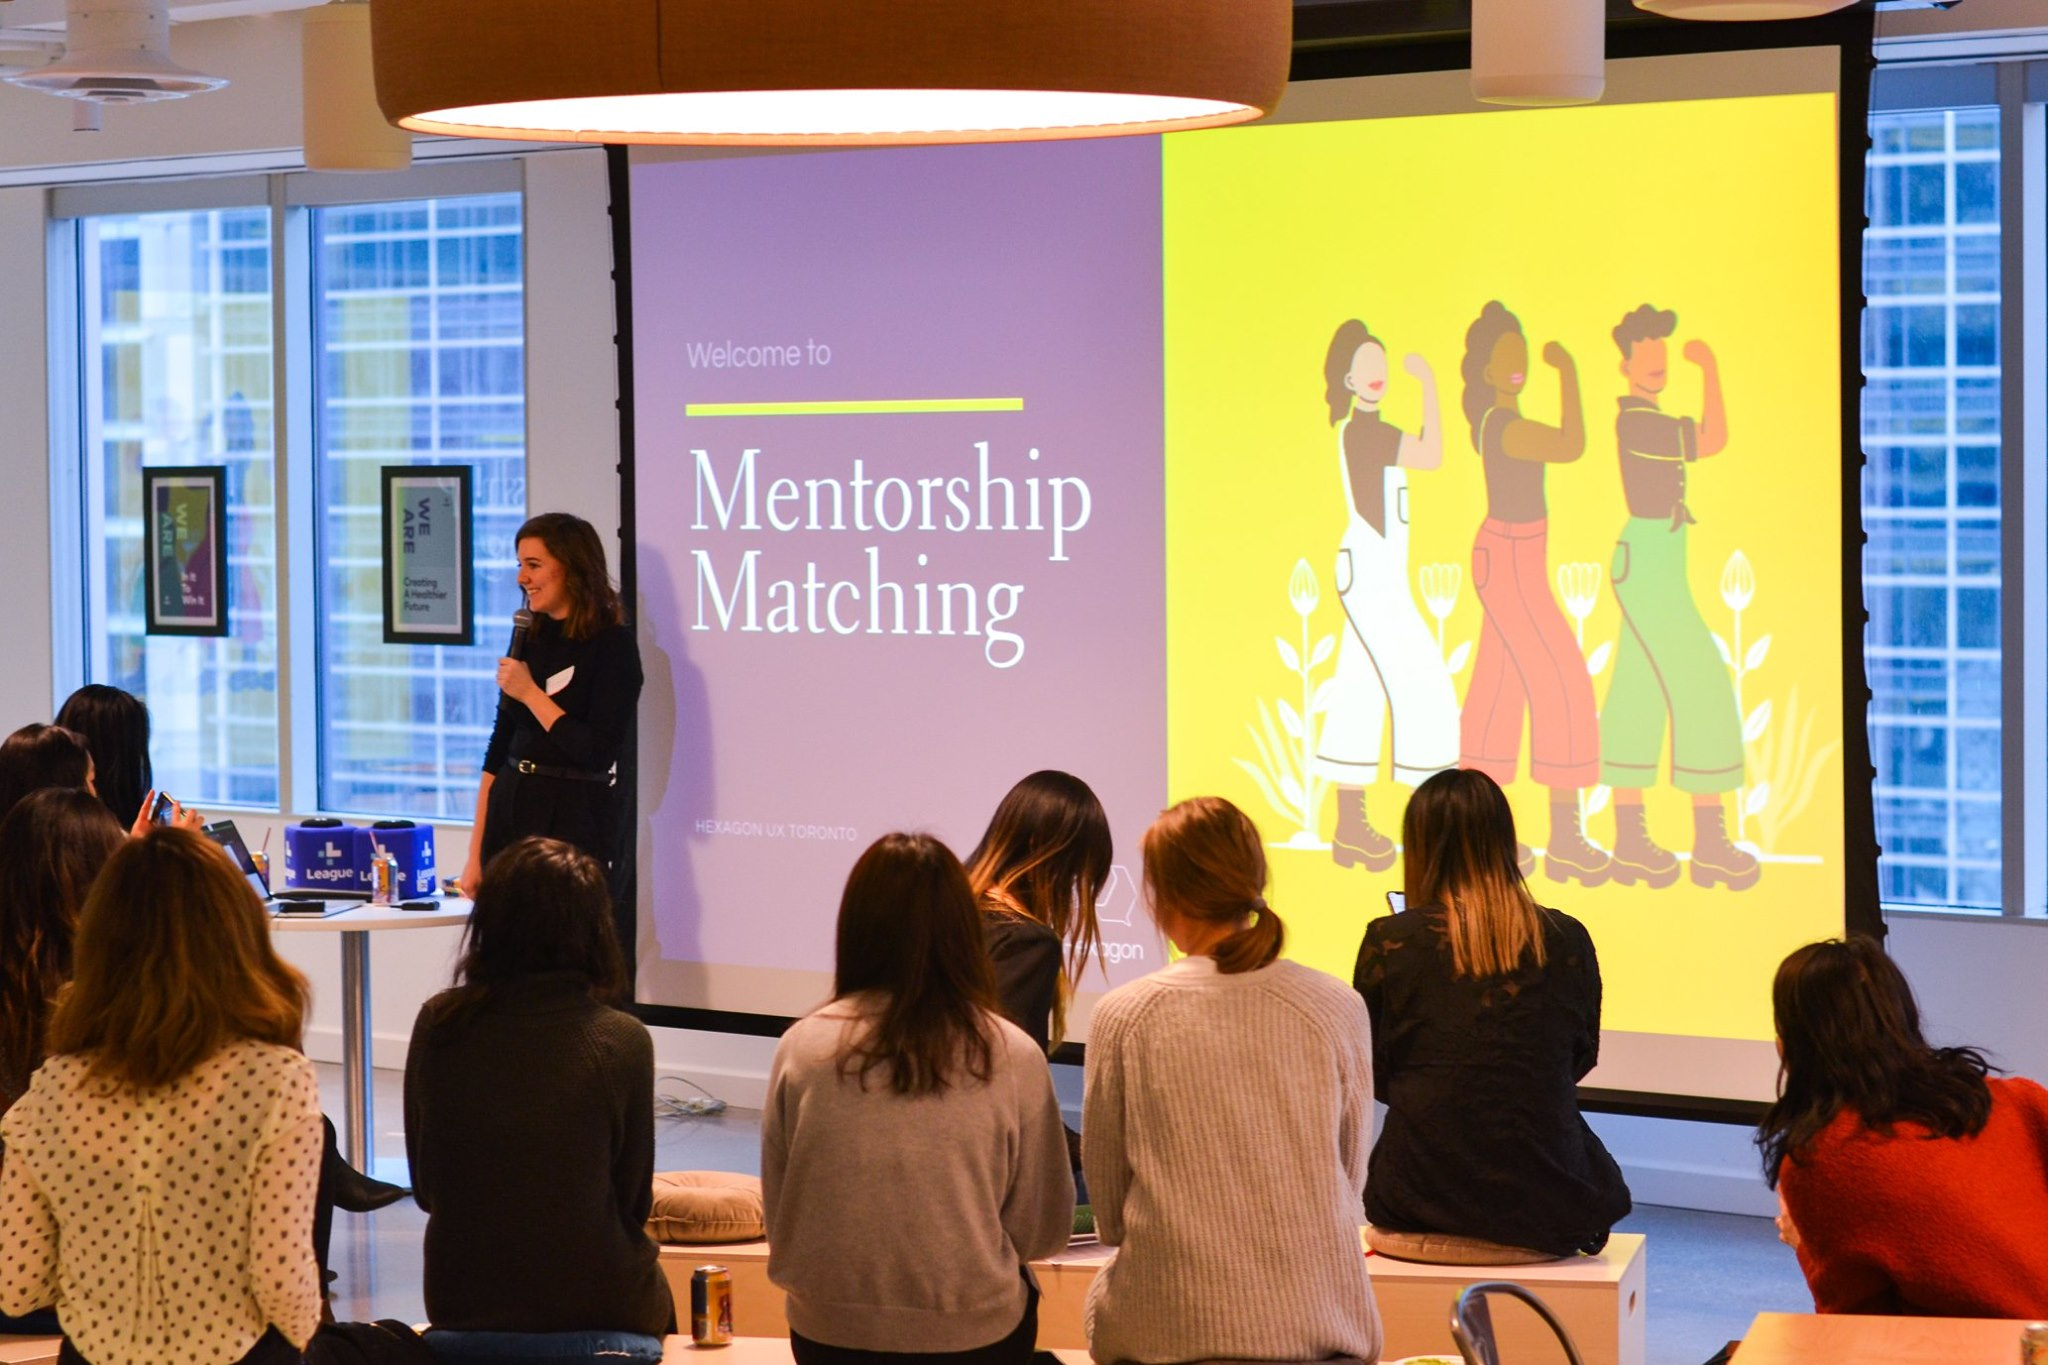 Be the first to know about Fall 2019 Mentorship Cohort - Are you interested in participating in our Fall 2019 Mentorship cohort either as a mentor, mentee or as a volunteer? Sign up here to stay updated on the upcoming mentorship cohort!